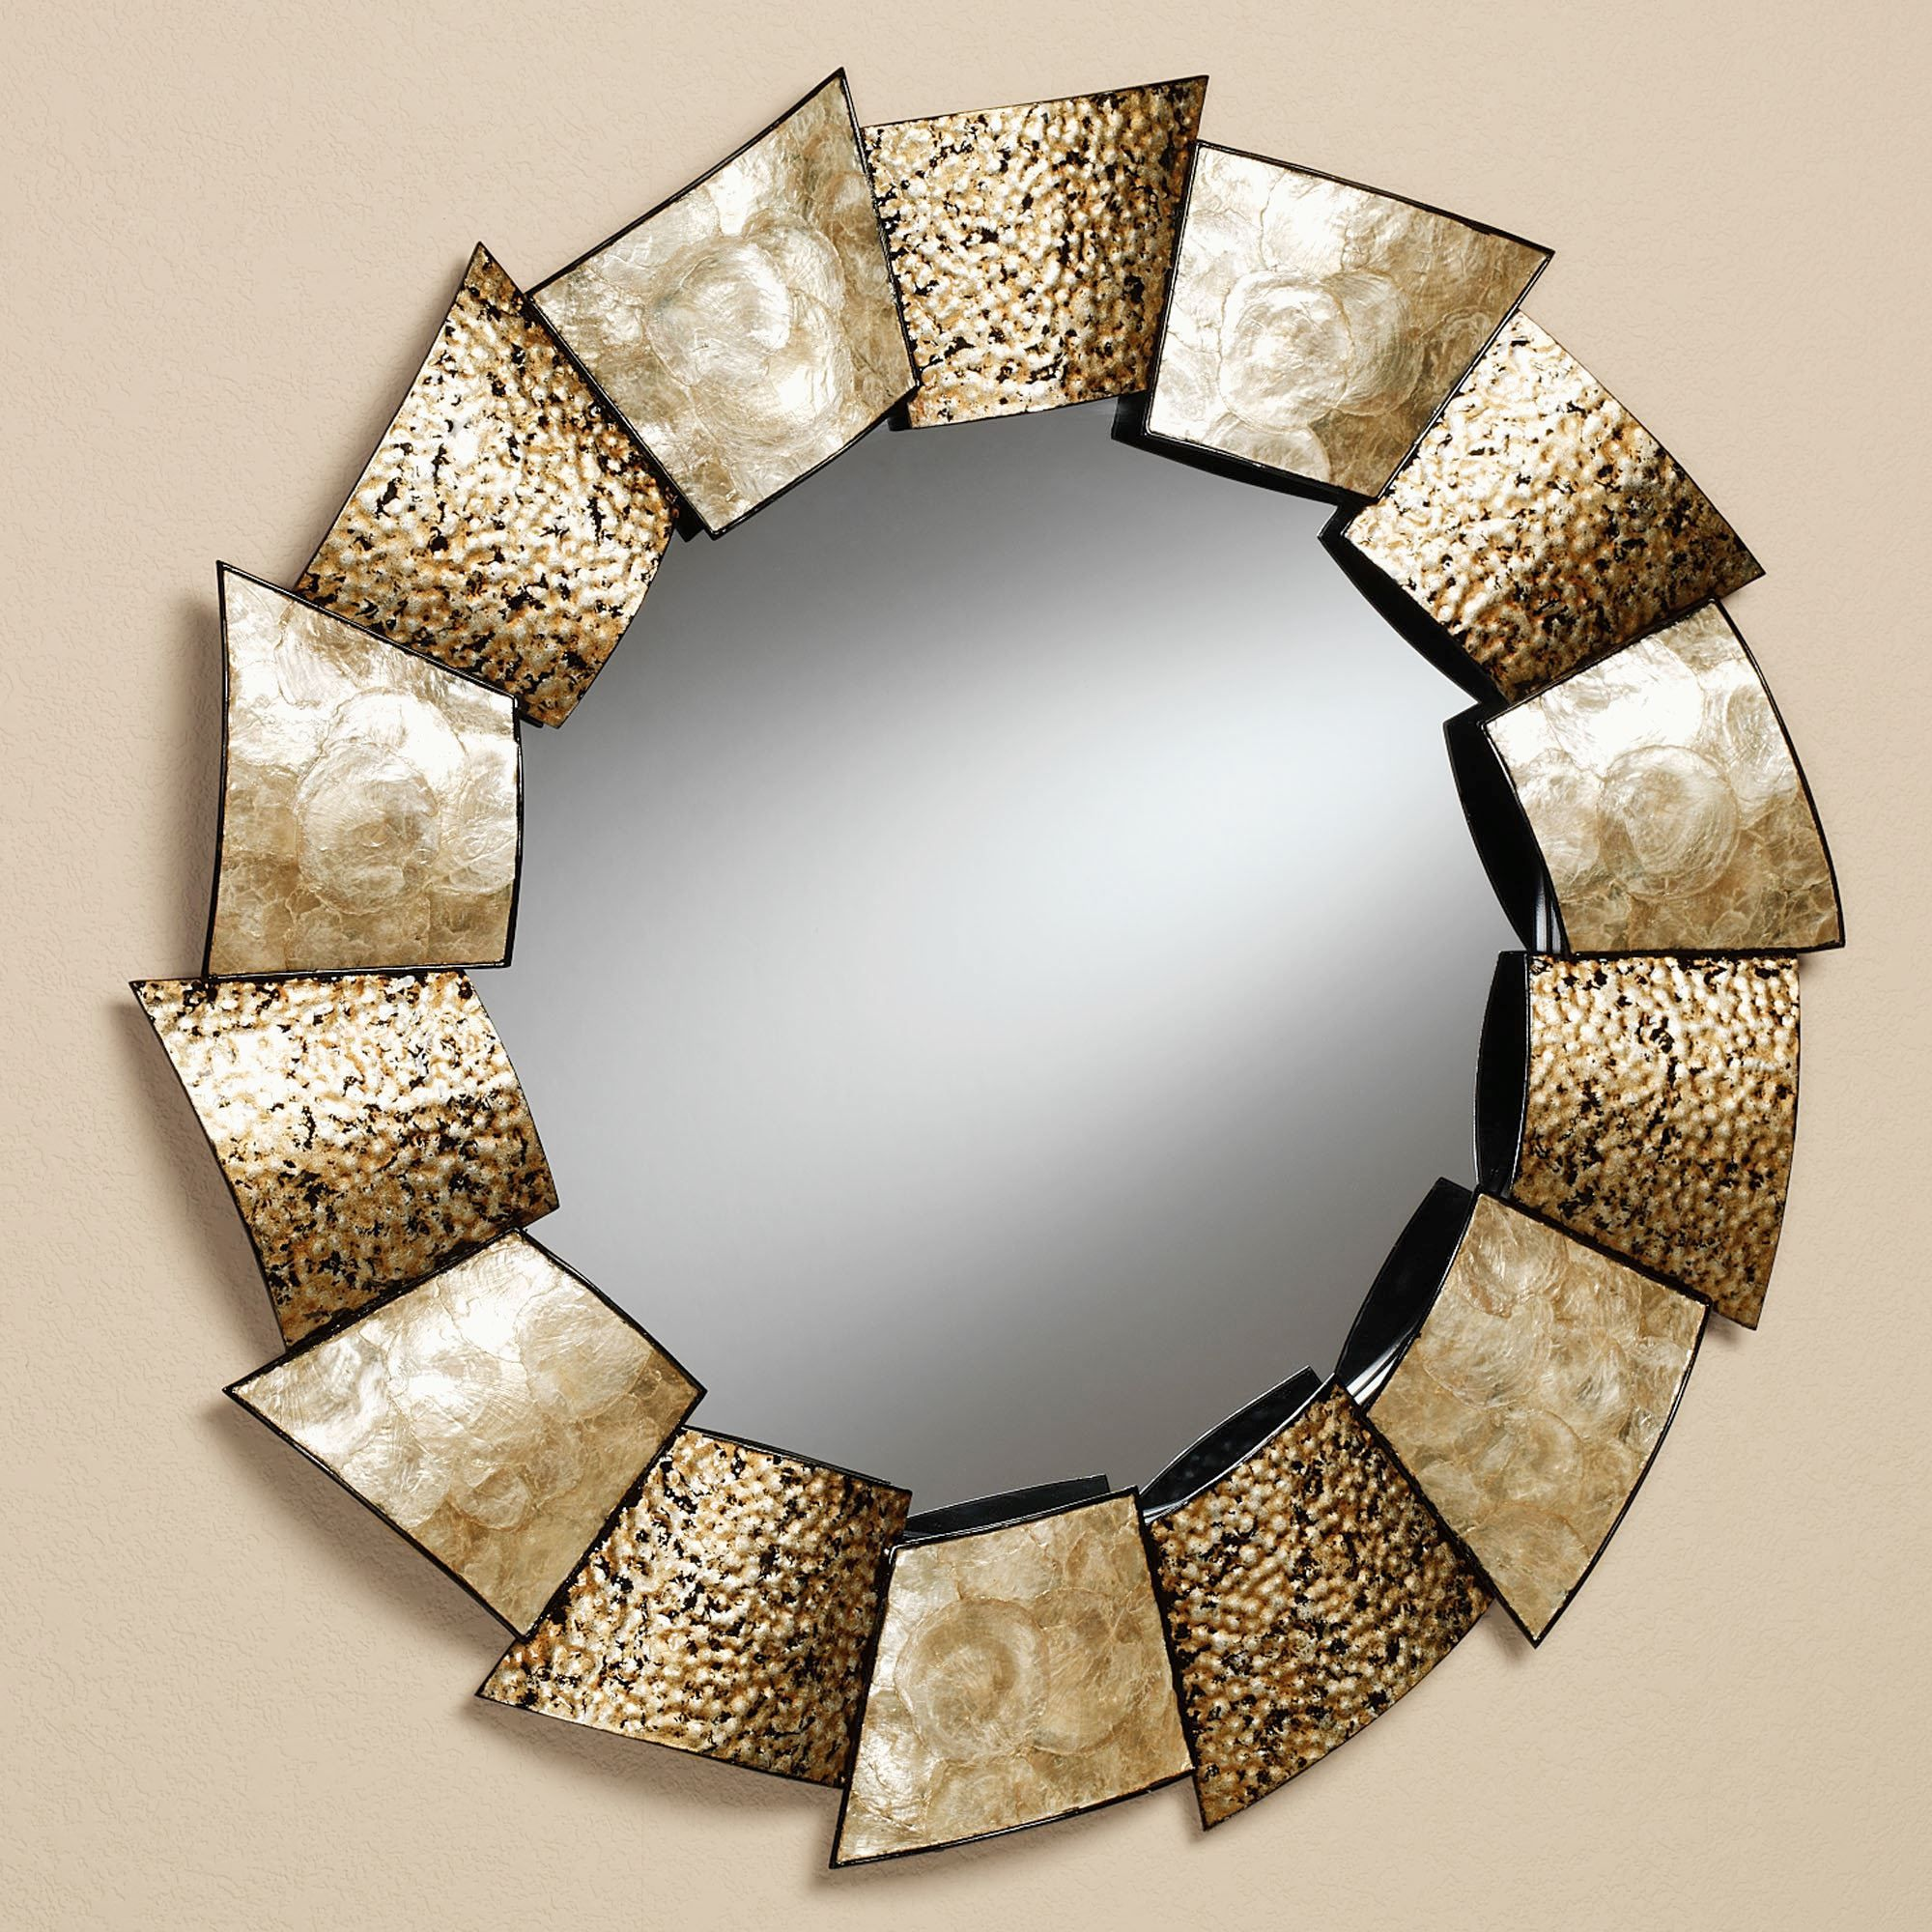 Wall Mirror Decor bedroom wall mirrors decorative | carpetcleaningvirginia